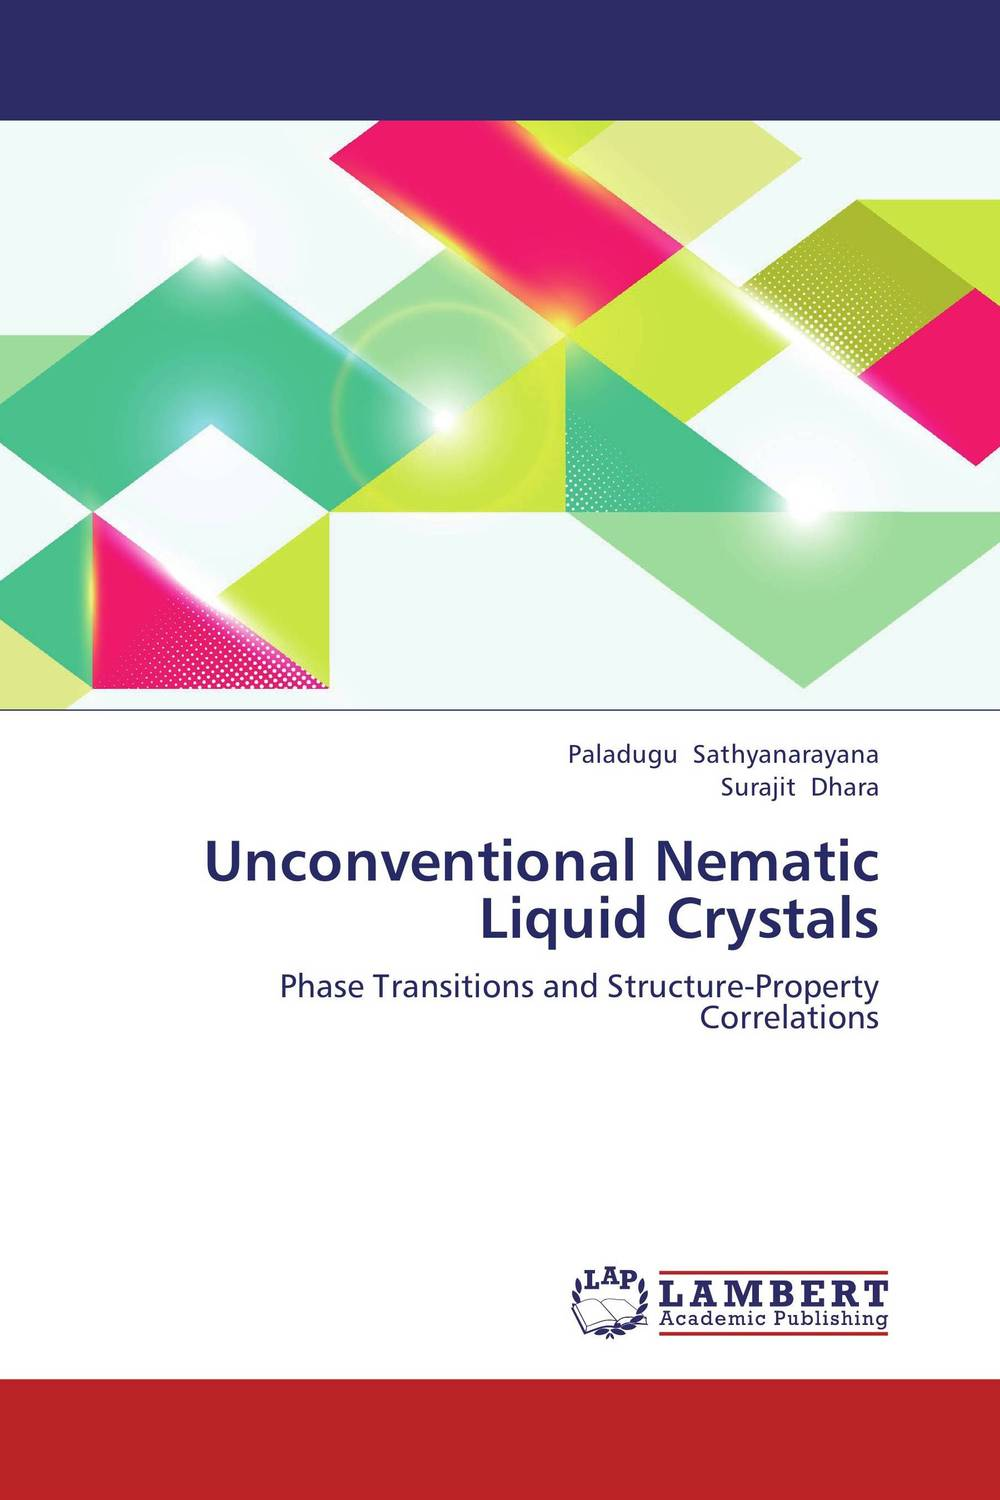 Unconventional Nematic Liquid Crystals kenneth rosen d investing in income properties the big six formula for achieving wealth in real estate